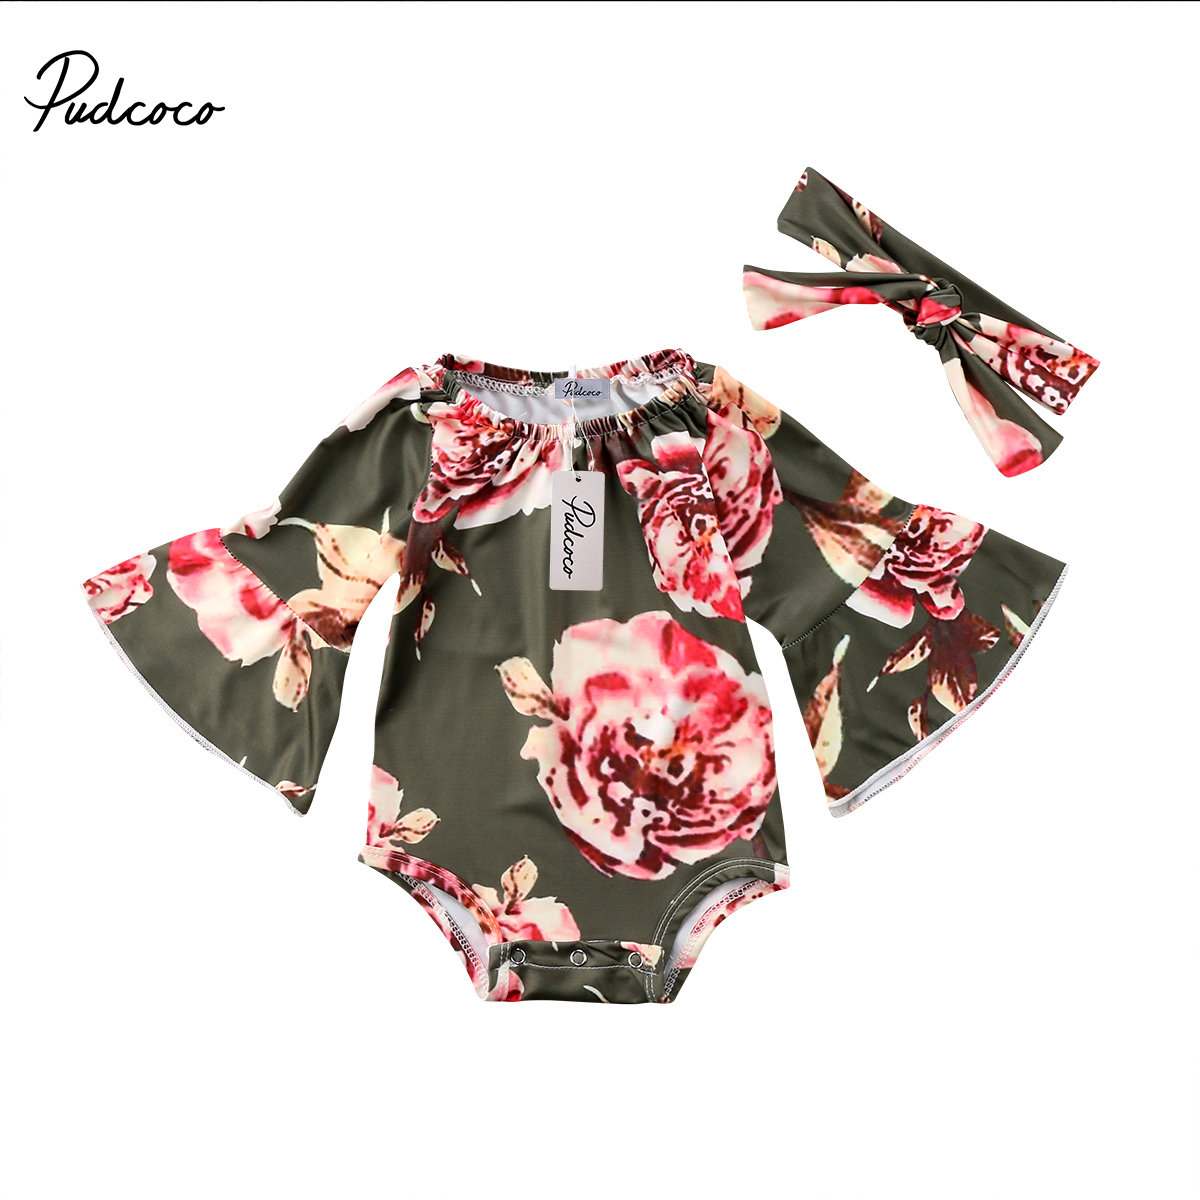 Flower Girls Clothing Newborn Toddler Baby Girl Flower Flare Long Sleeve Romper Jumpsuit Outfits Clothes 0-24M